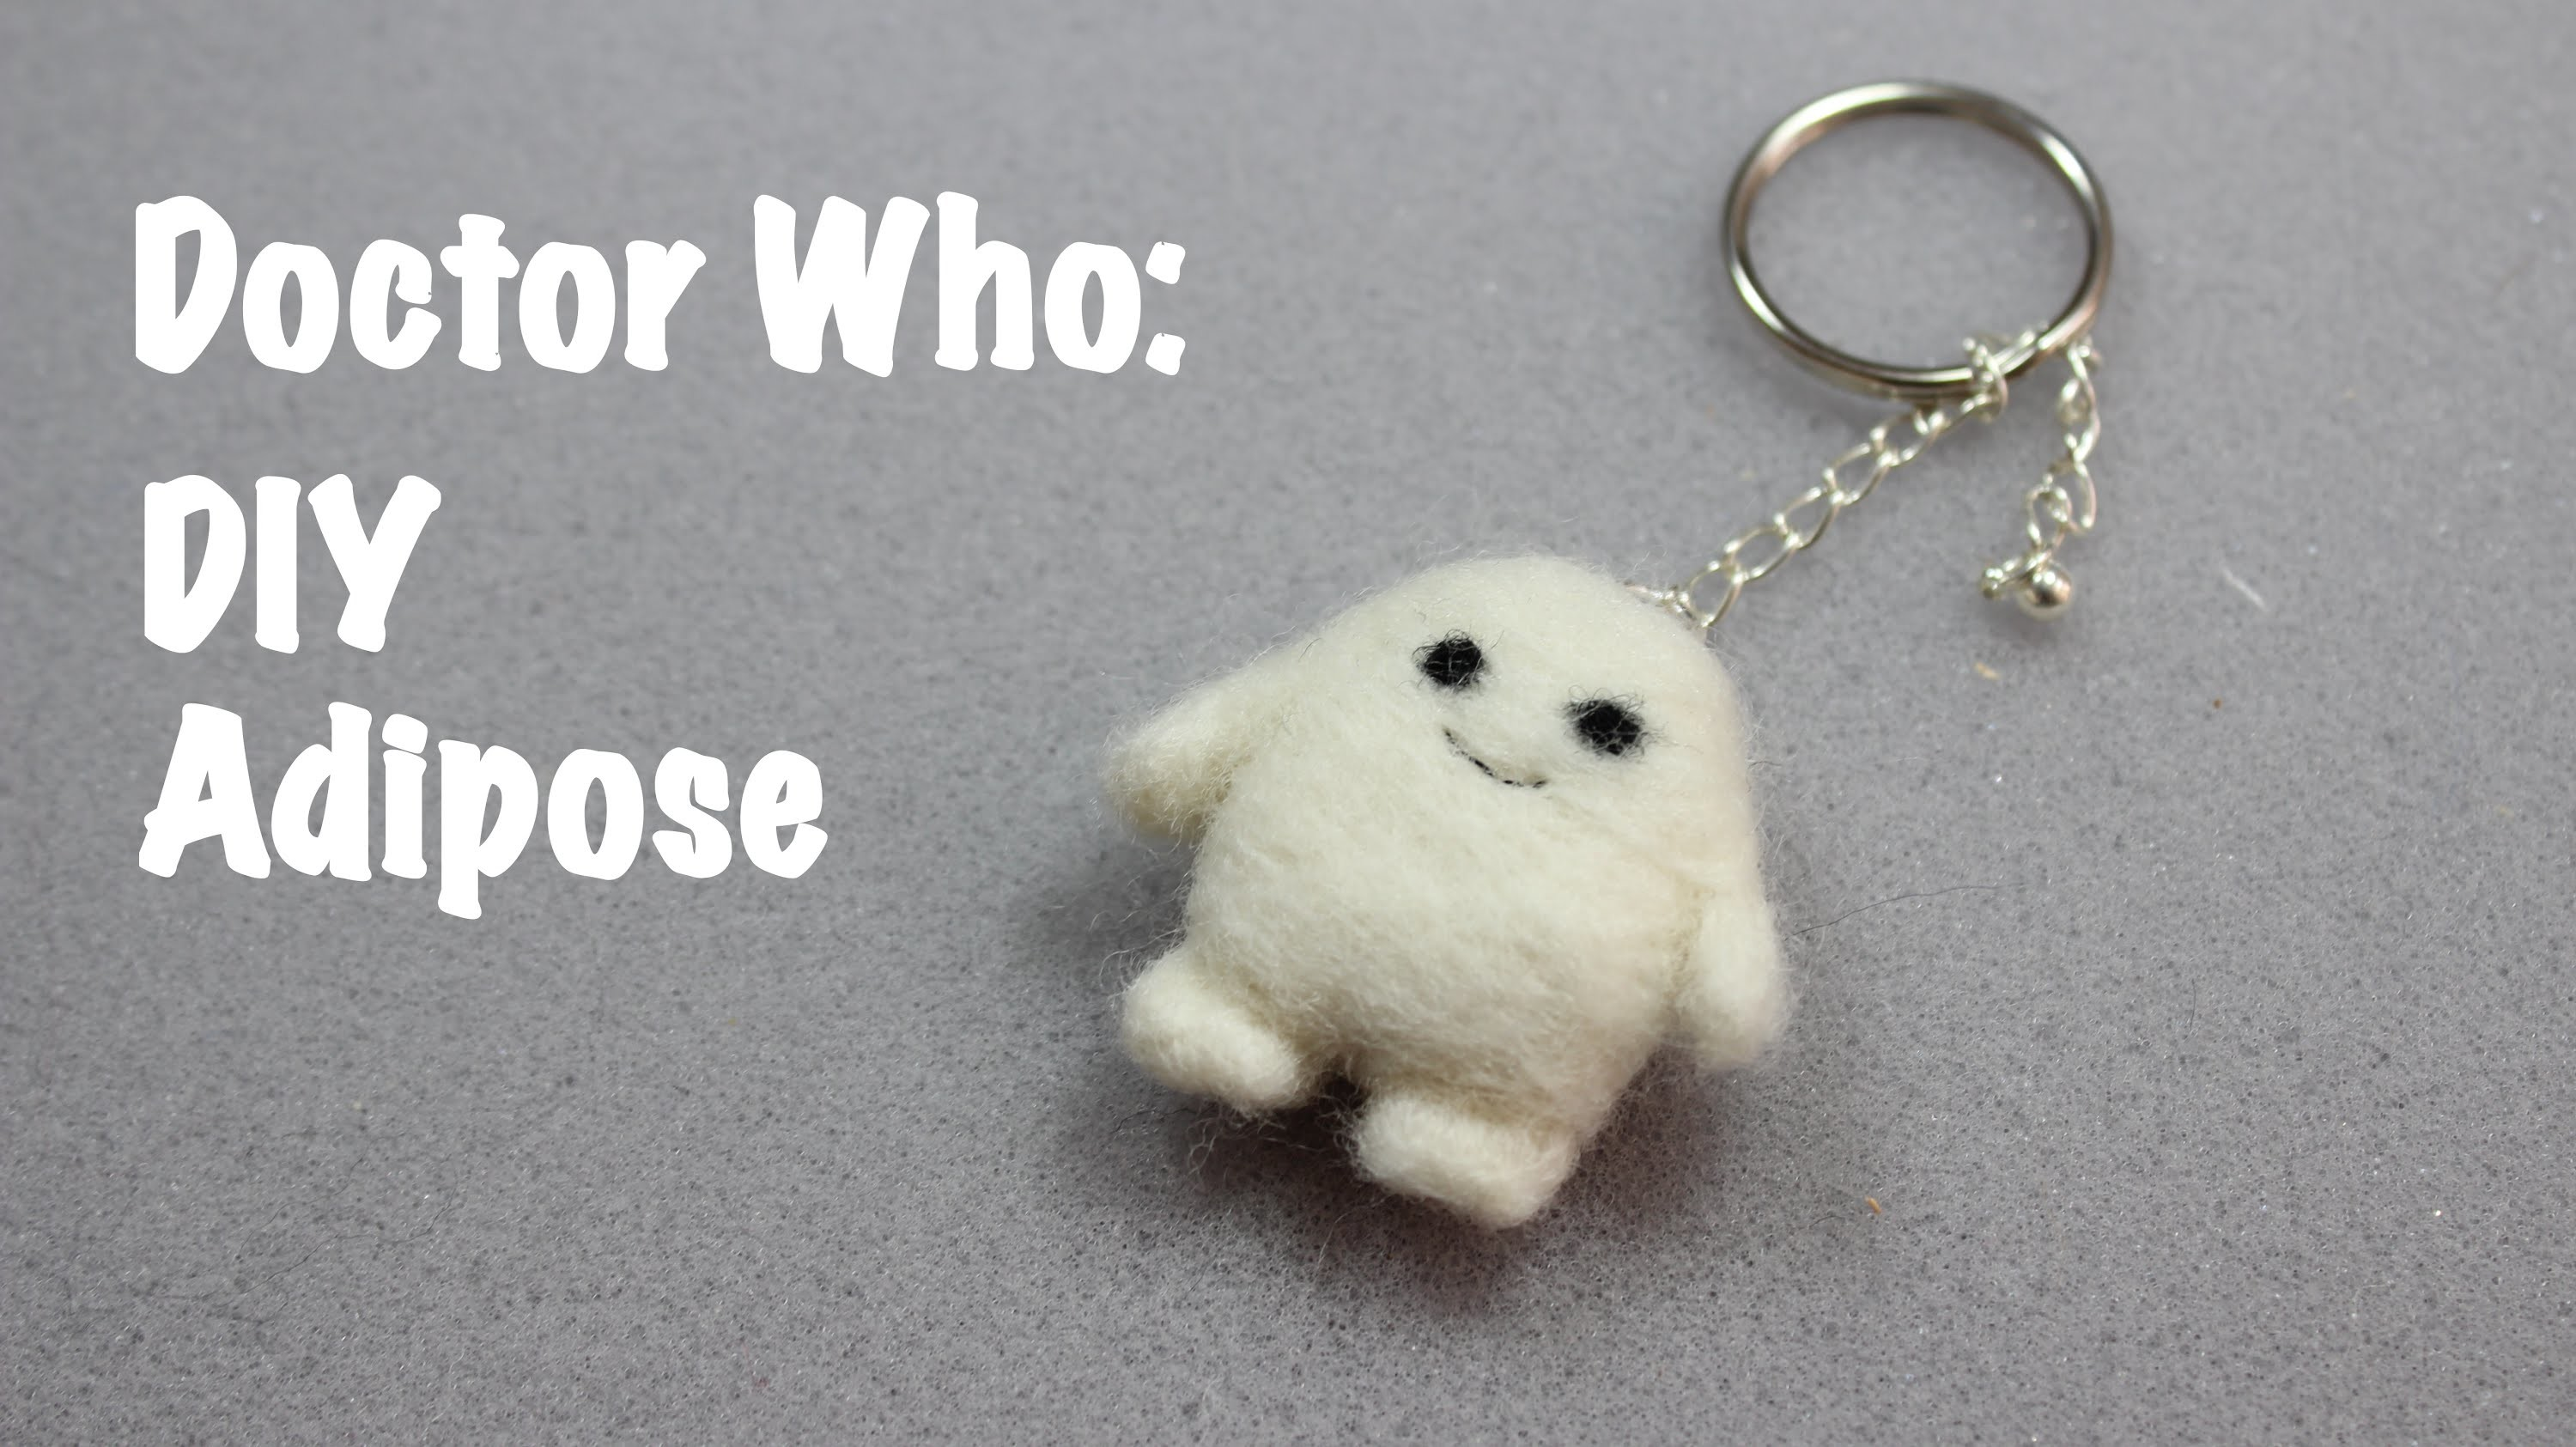 DIY Adipose from Doctor Who Needle Felting